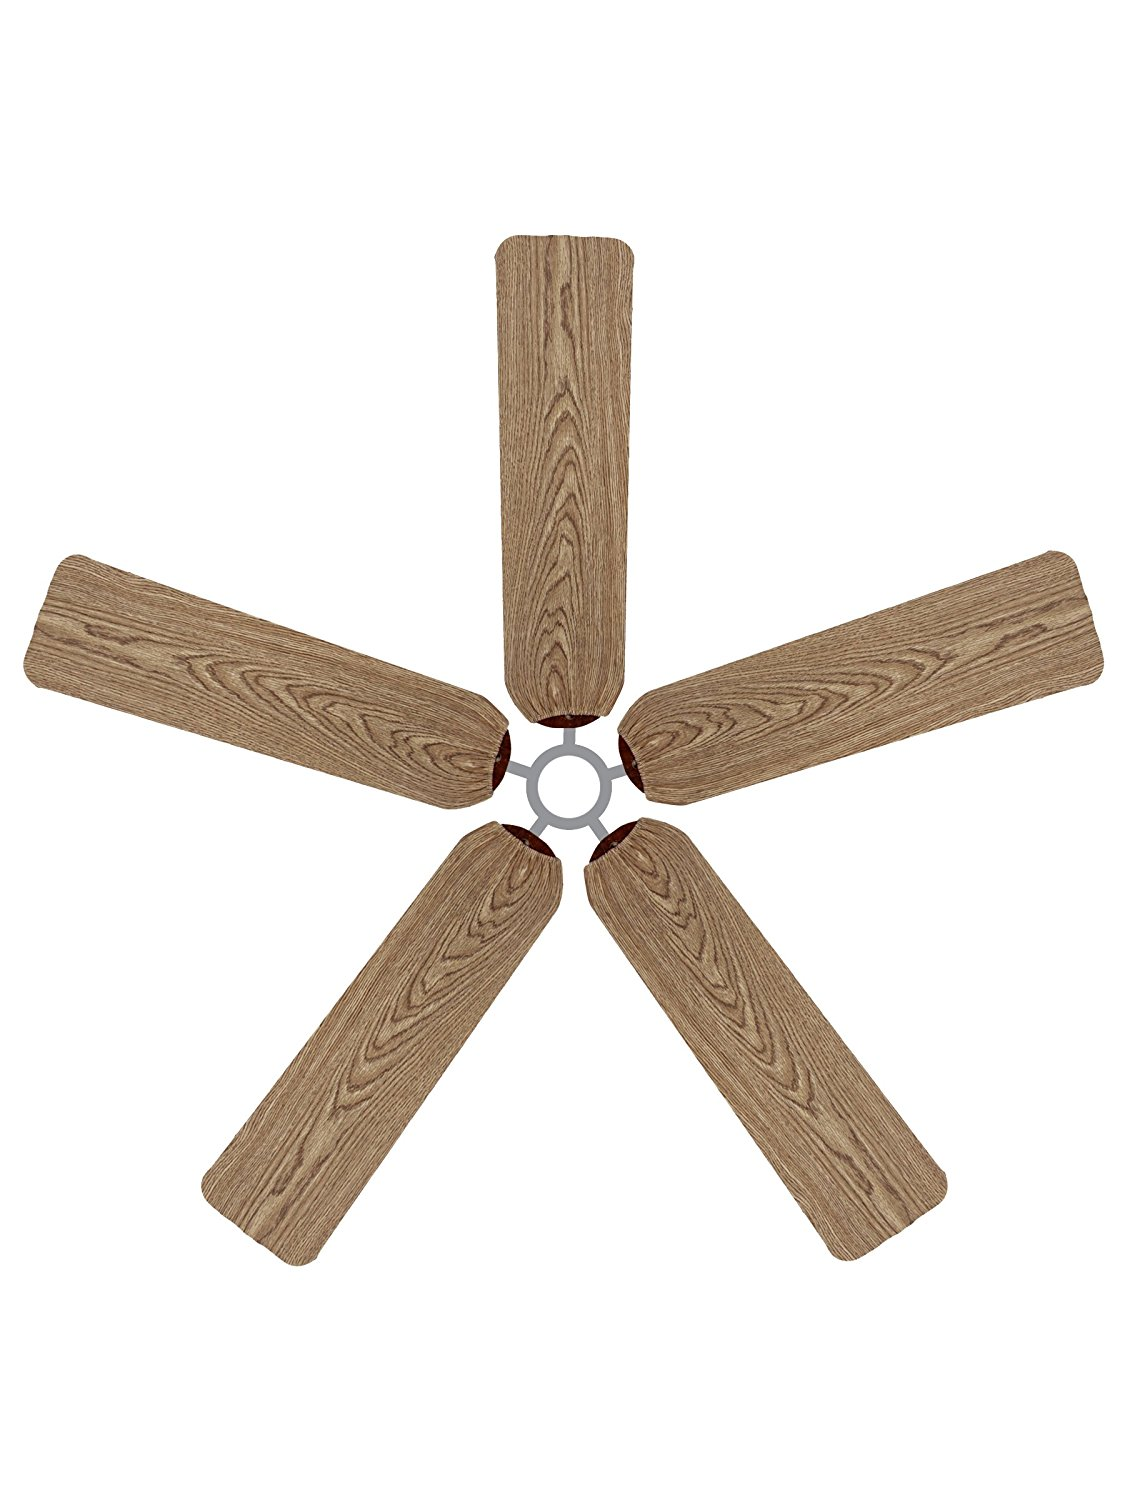 Fan Blade Designs 6541 Ceiling Fan Blade Covers, Wood